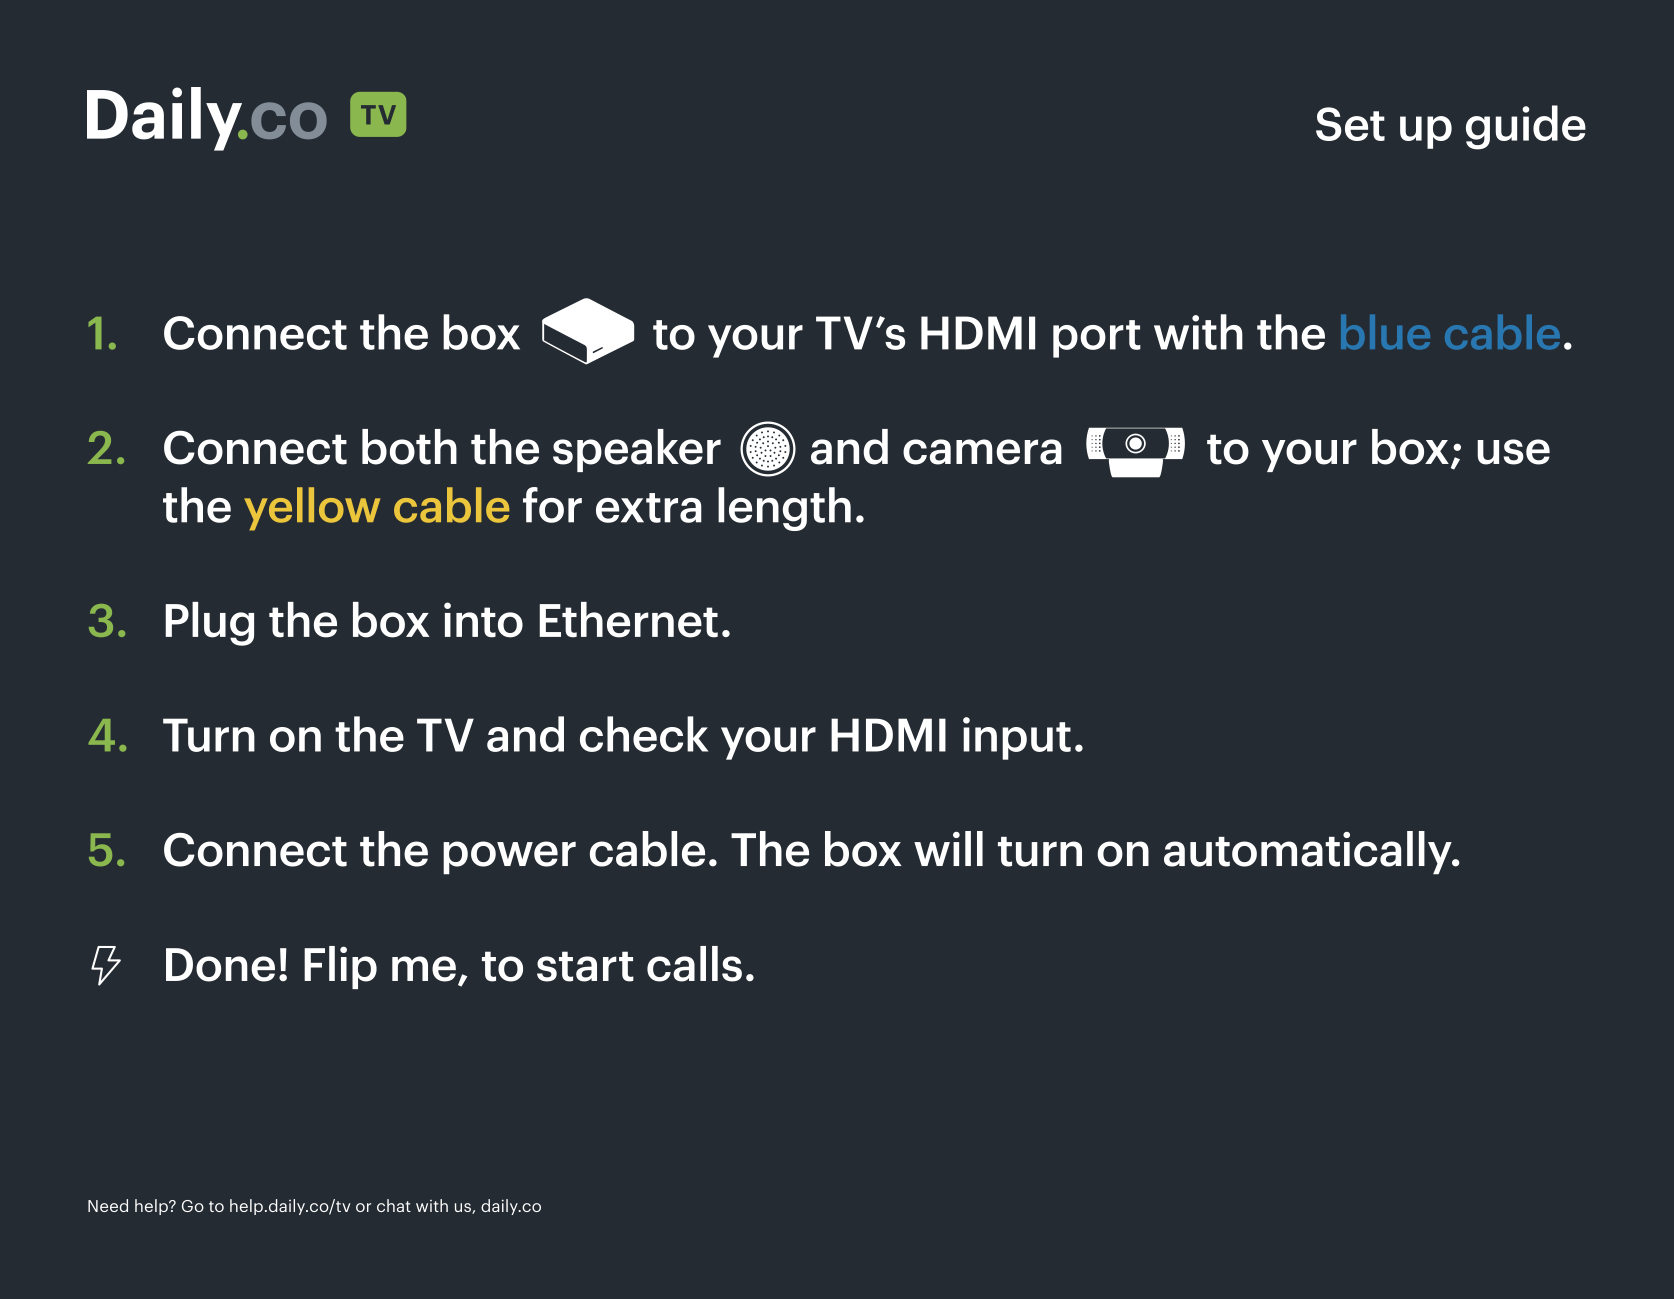 How to set up TV video conferencing in minutes: Our Daily co TV